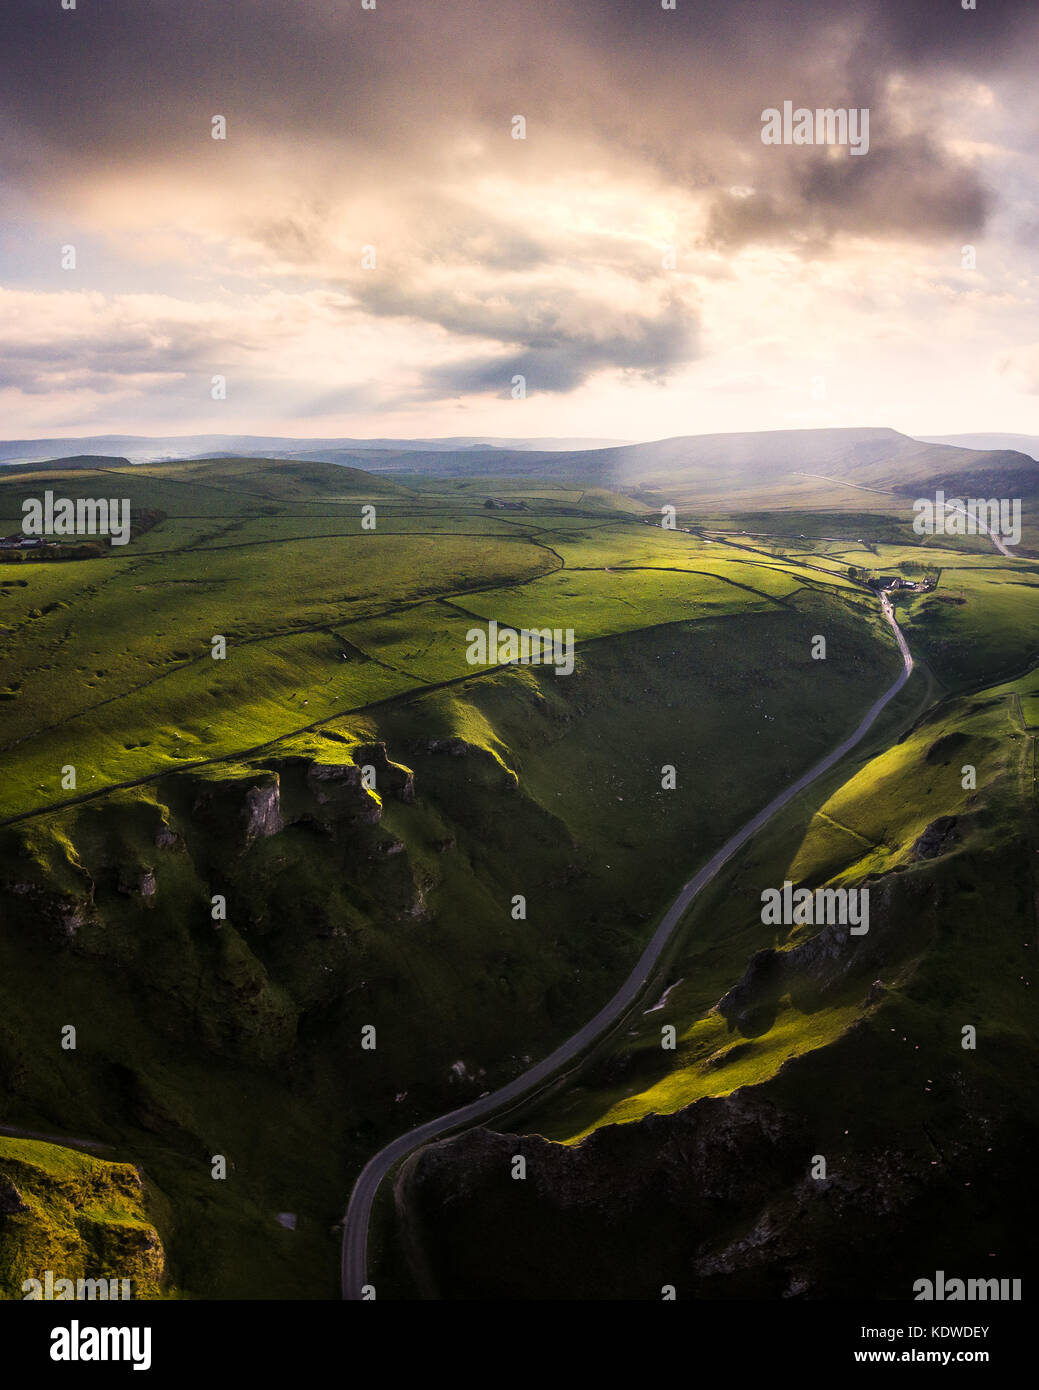 A drone view from high above Winnats pass in Derbyshire, England - Stock Image